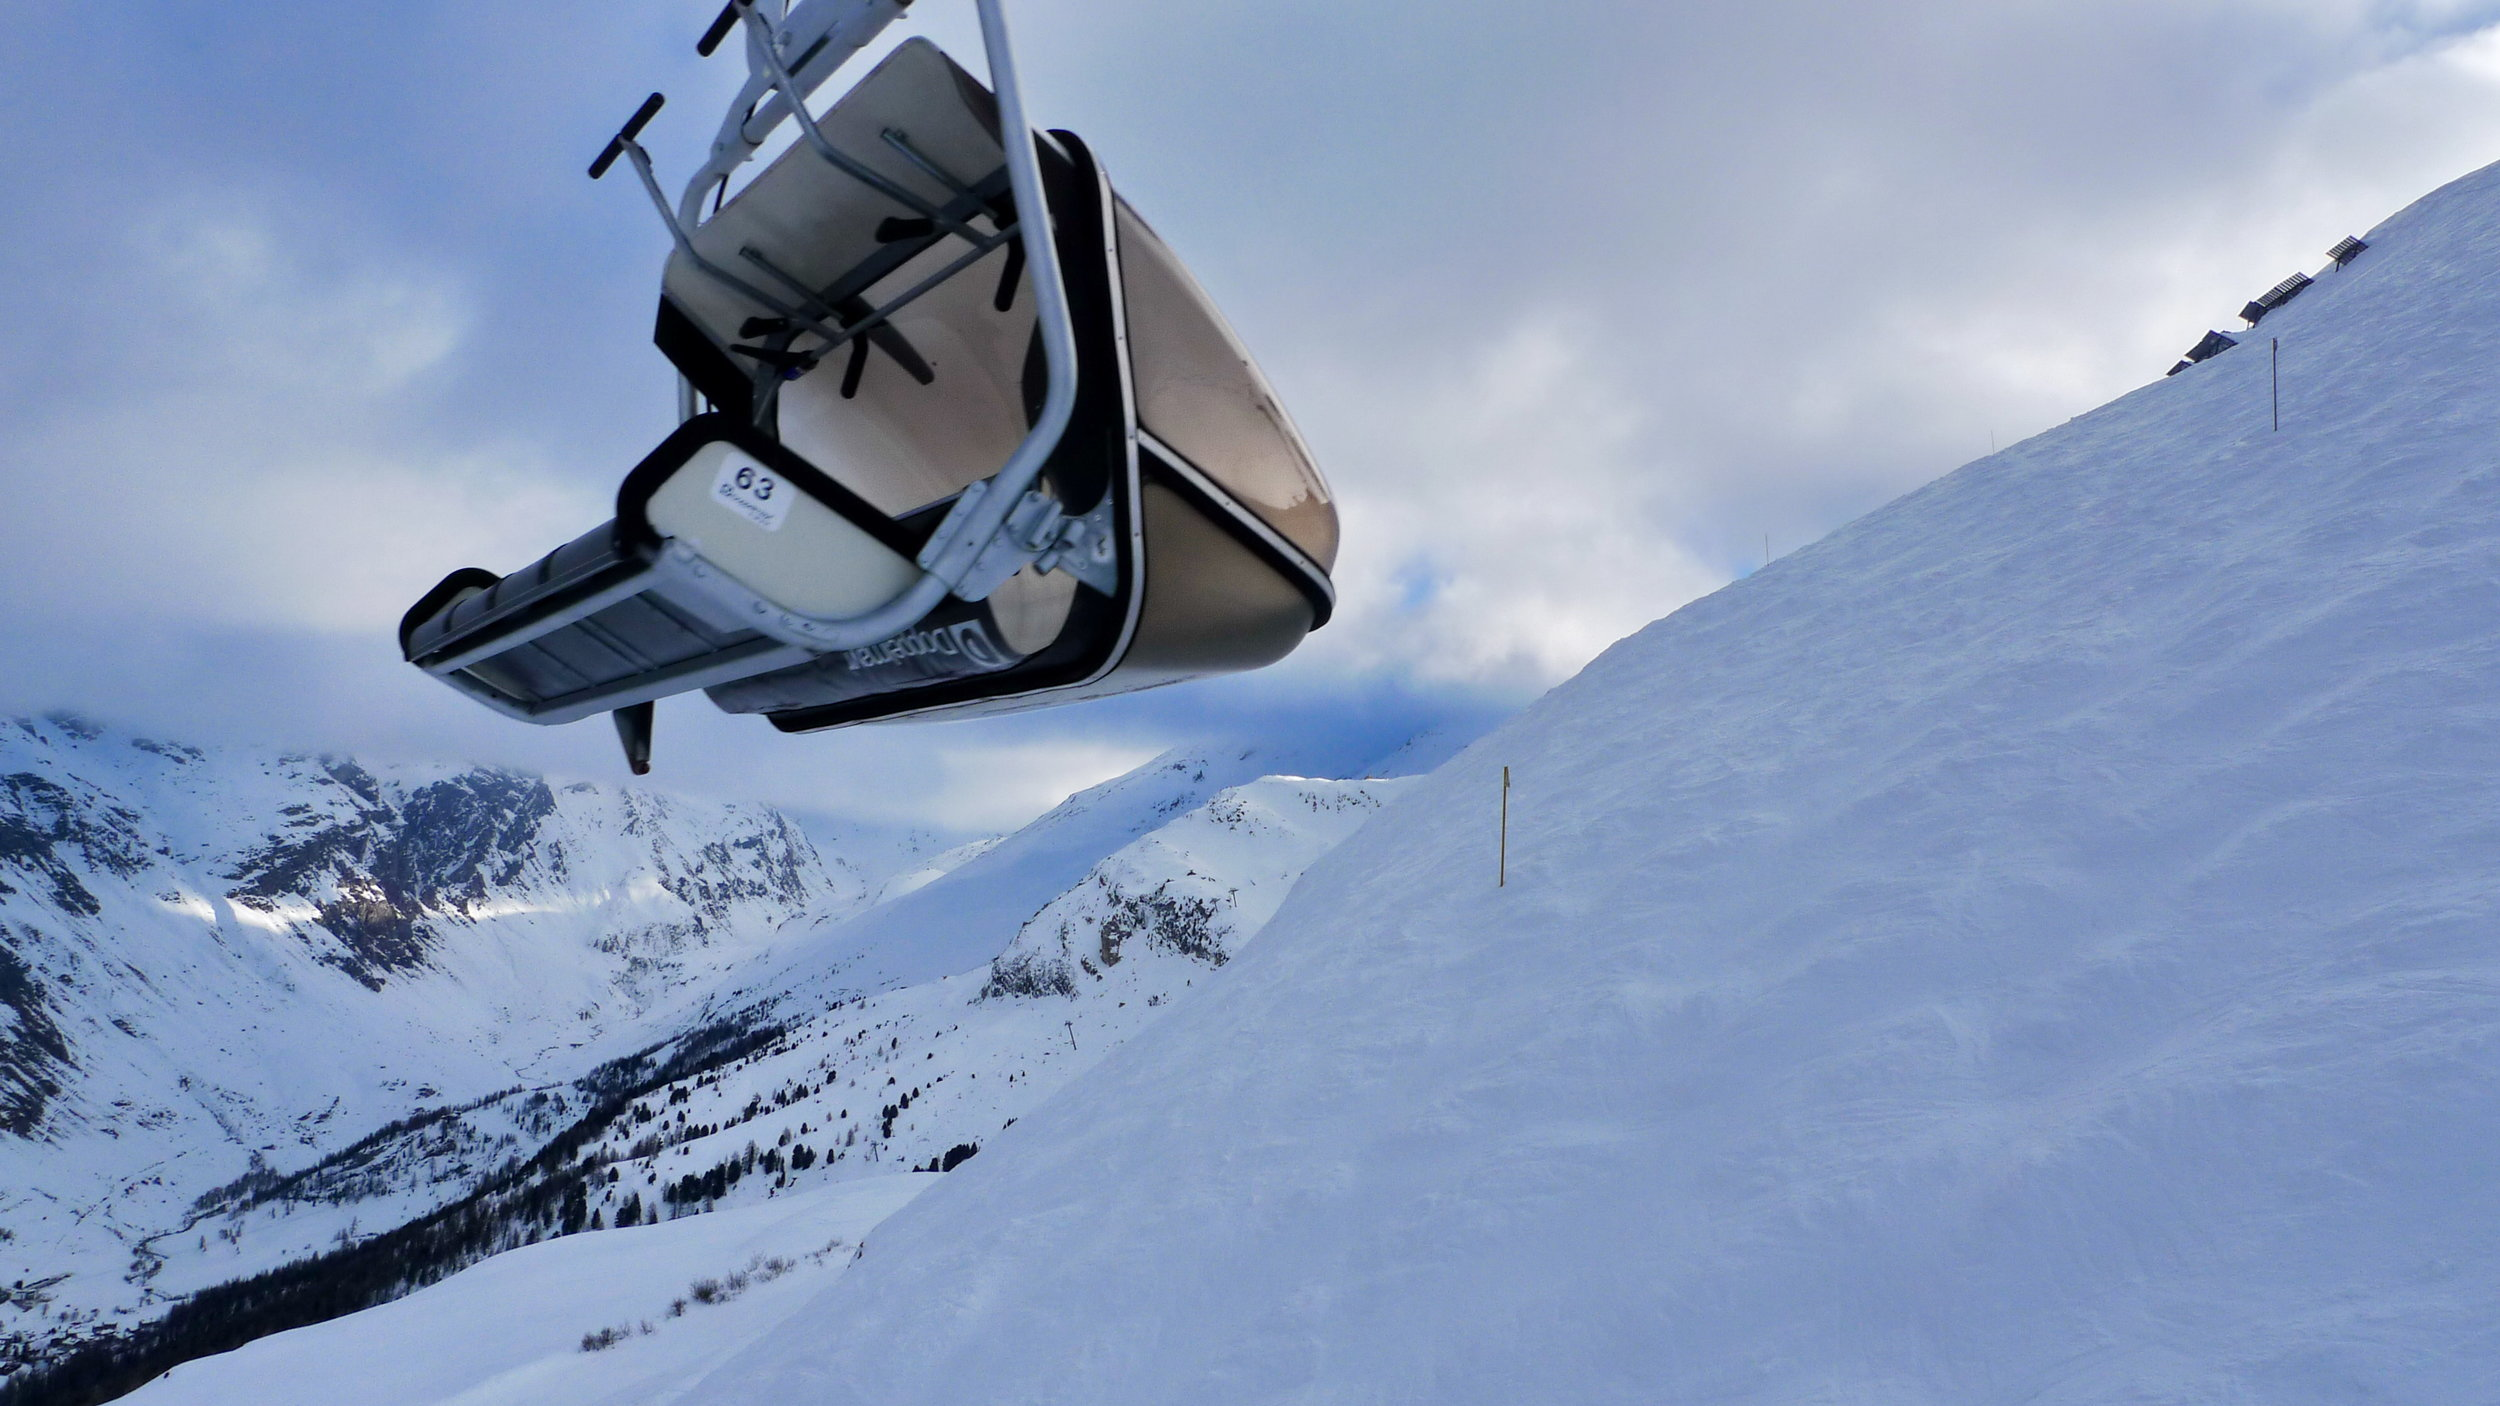 A ski lift in popular French ski resort Val d'Isere. Image credit:    Tania & Artur   /   Creative Commons